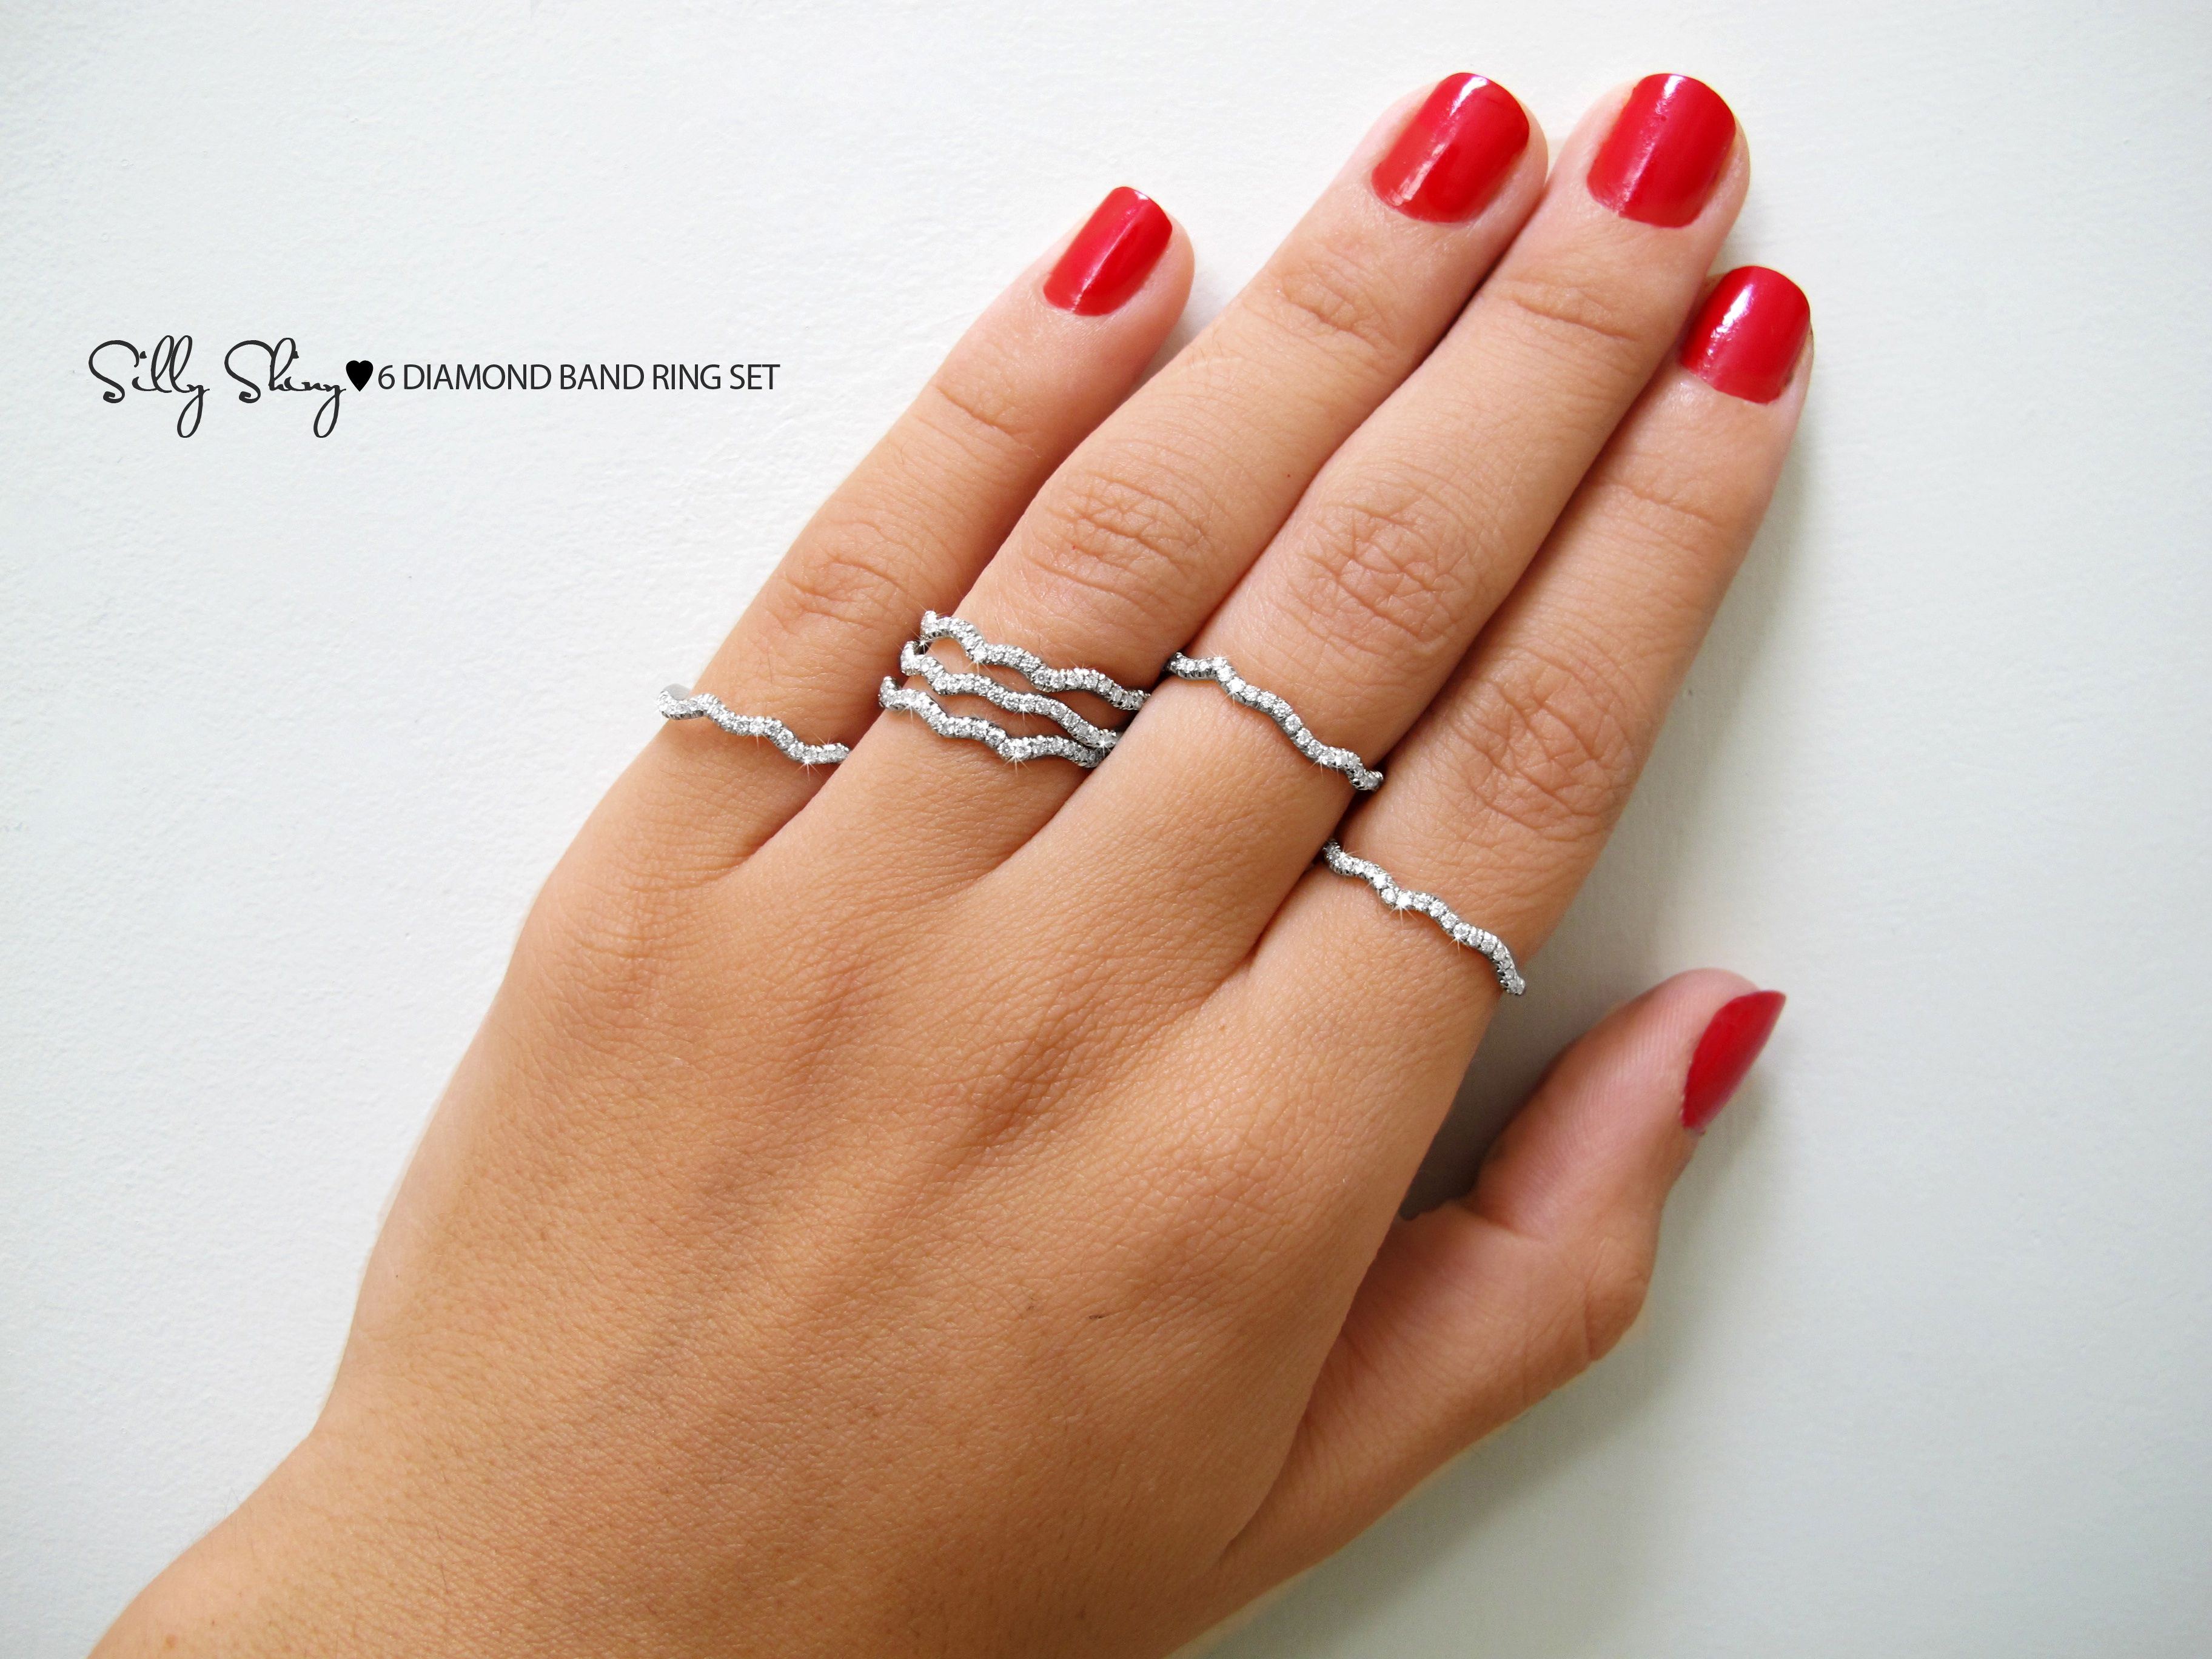 Make A Statment With 6 Diamond Bands Timeless Classic Look